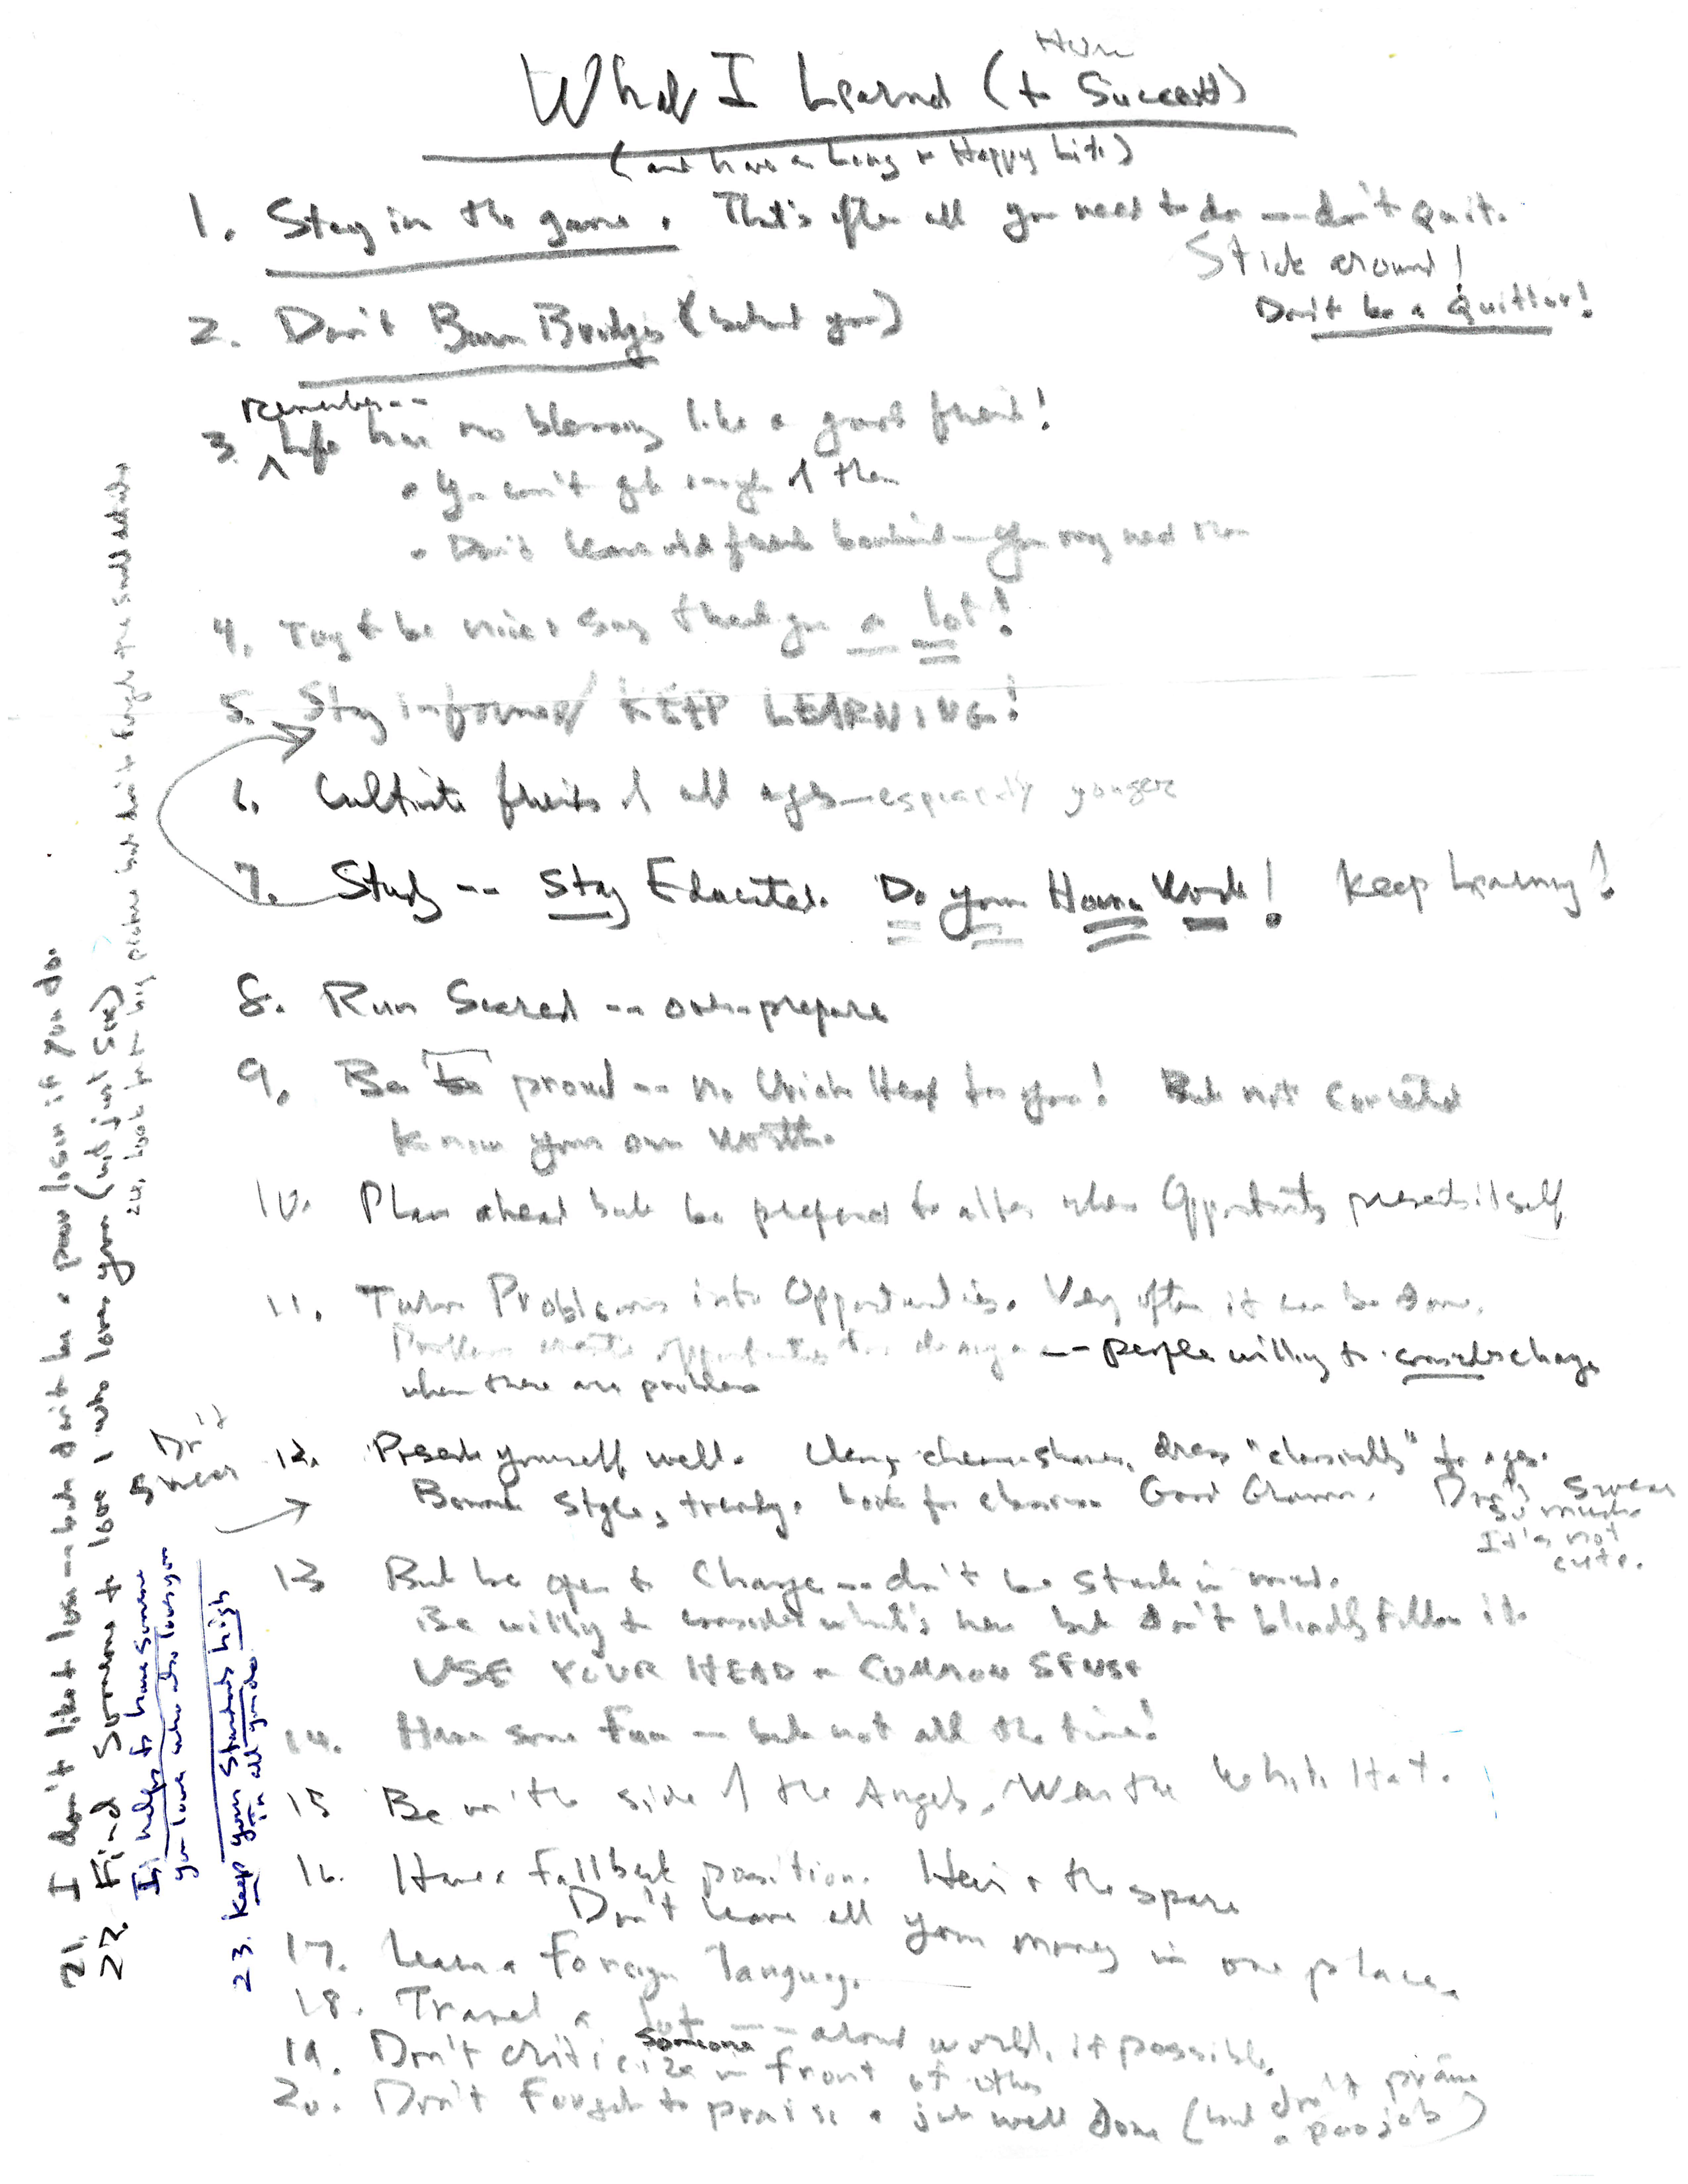 Richard Jenrette's handwritten note titled 'What I Learned (How to Succeed)'